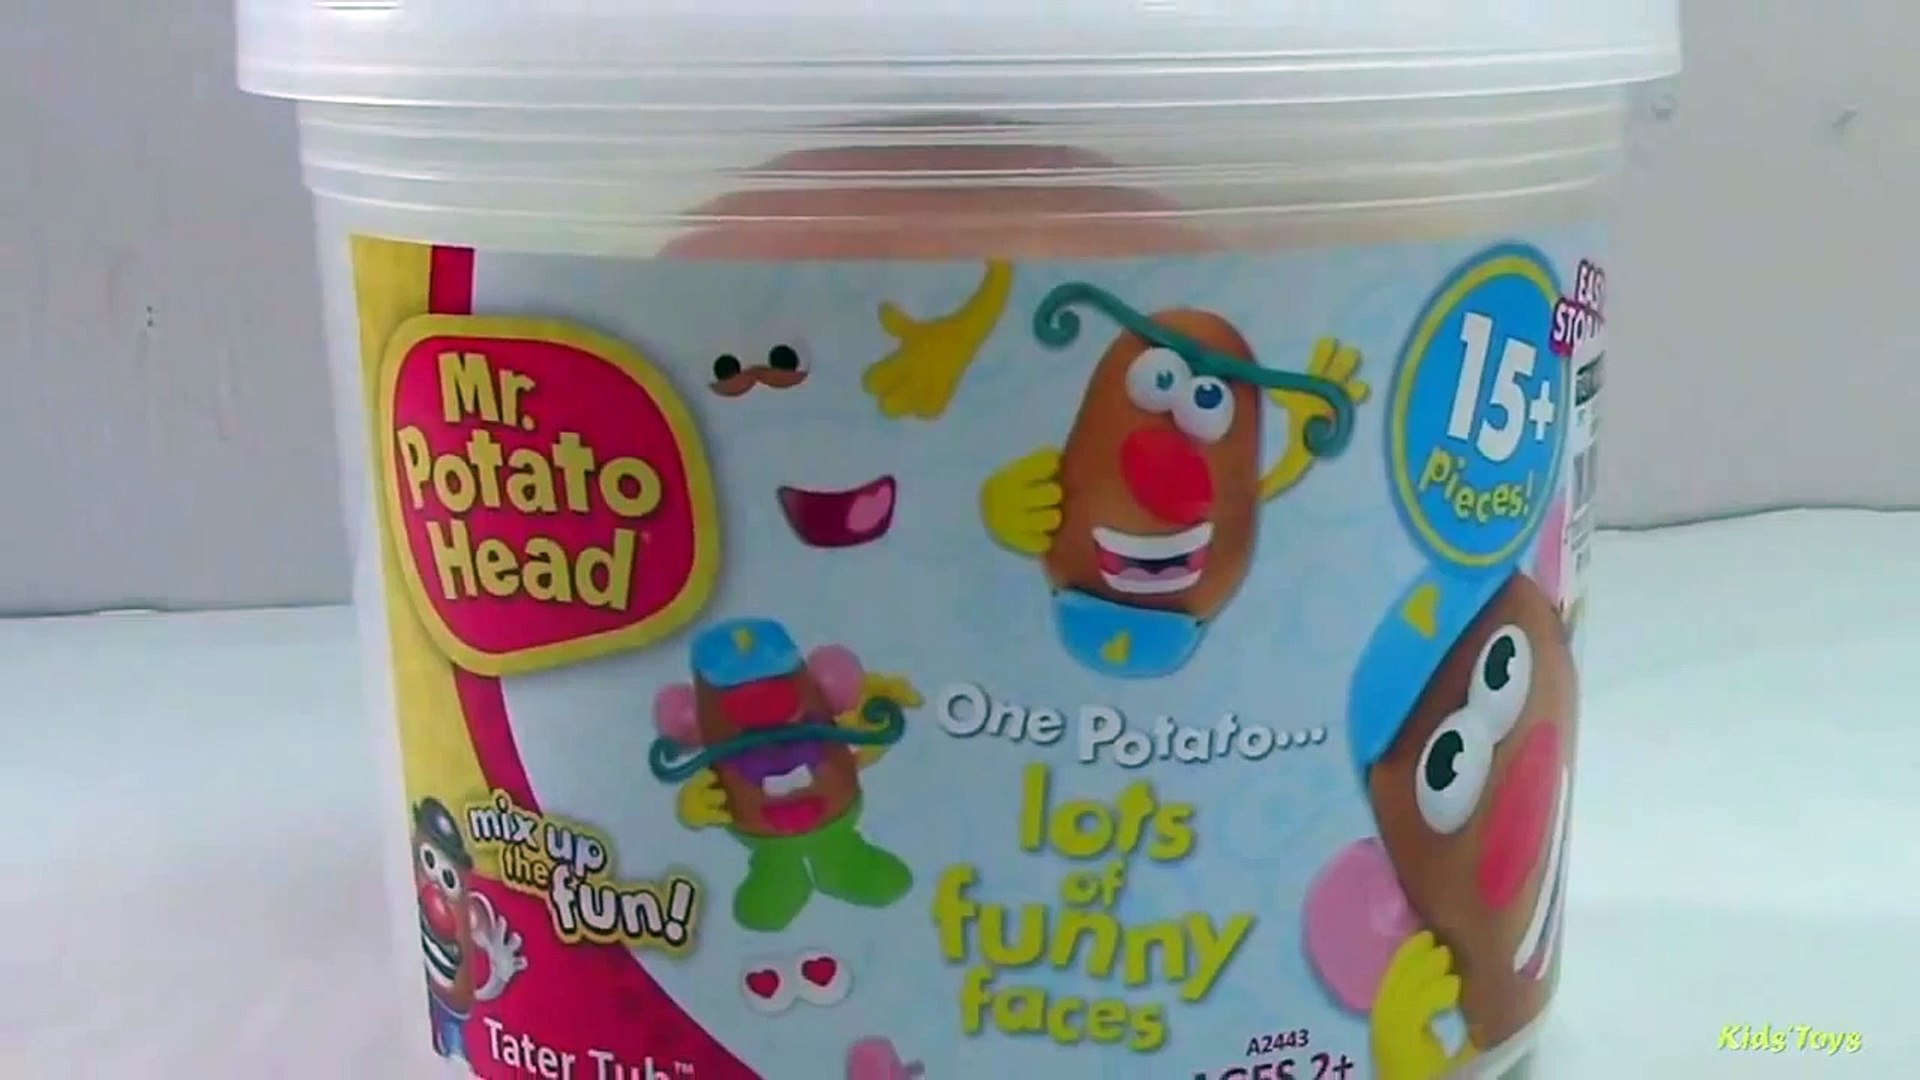 Mrs Potato Head Party Spudette and Mr Potato Head Tater Tub of Toy Story Movie